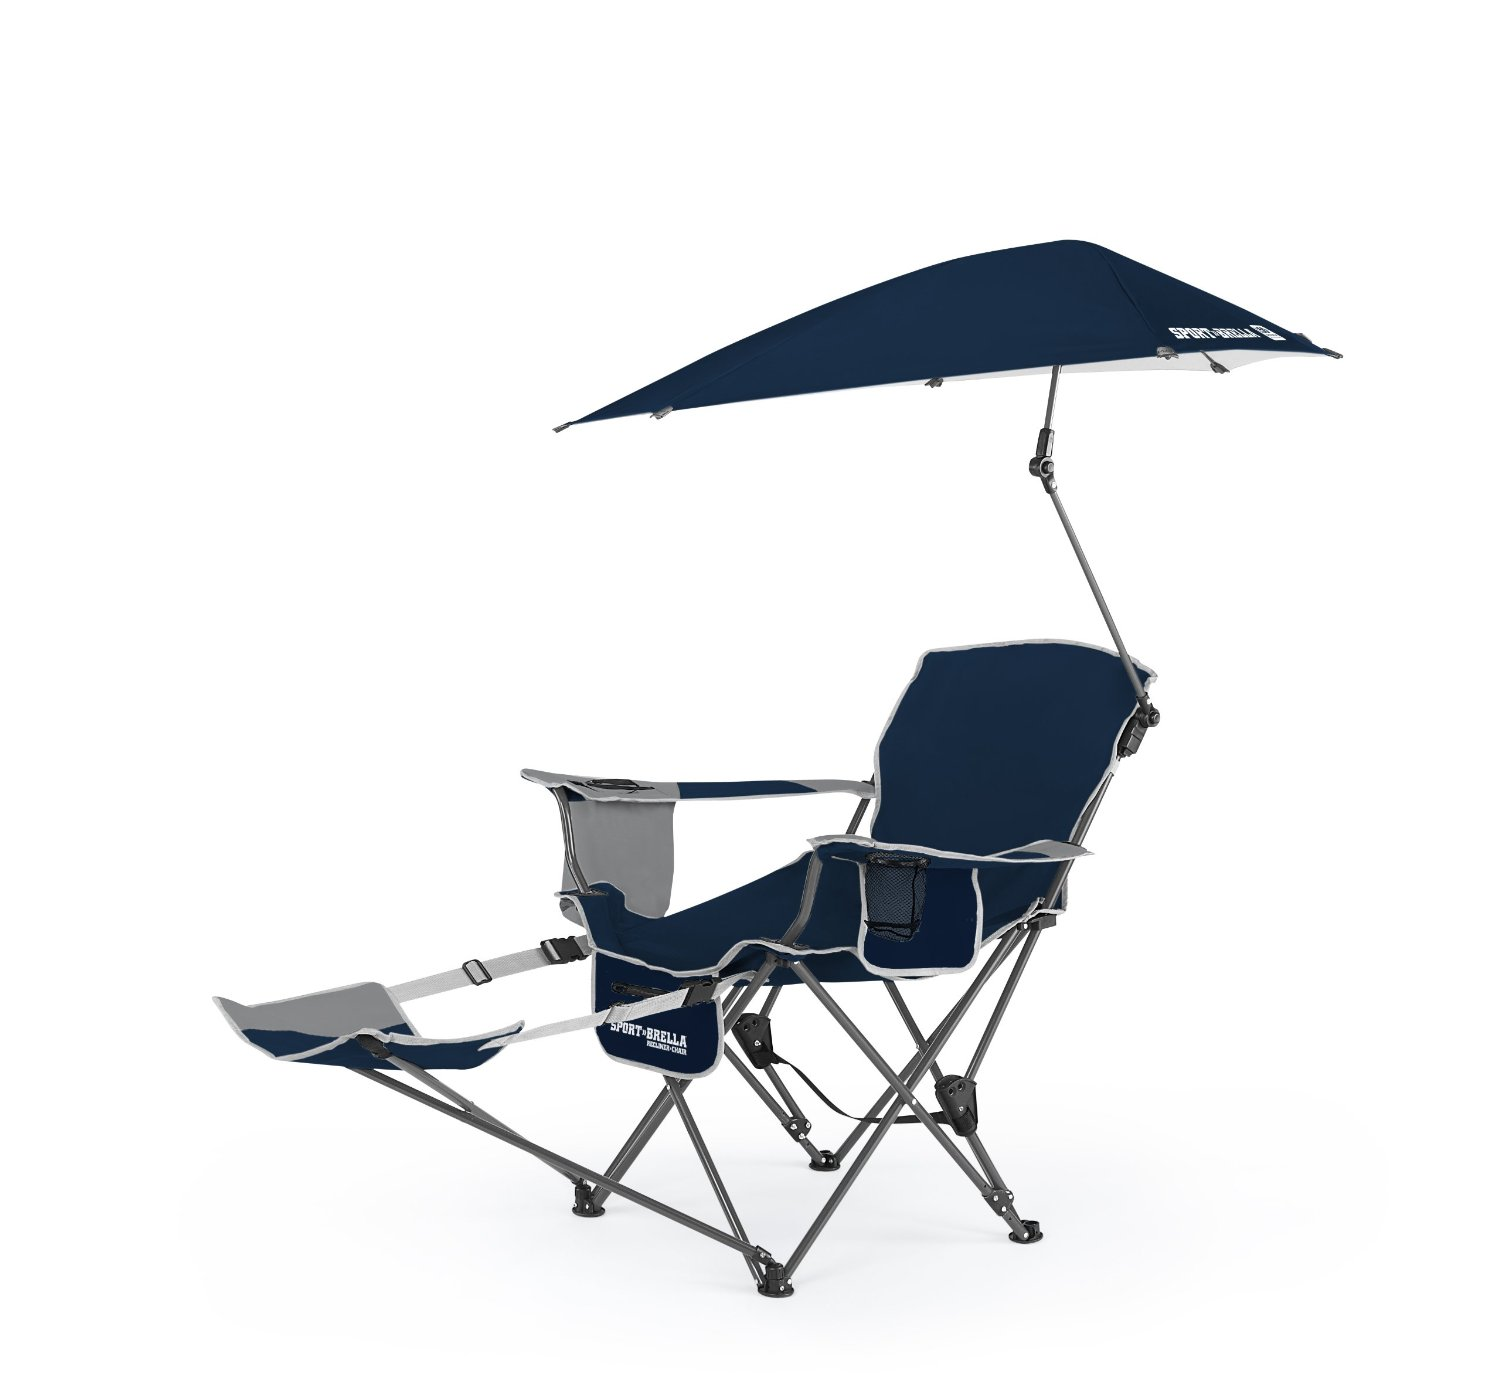 Sport Brella Recliner Chair Review